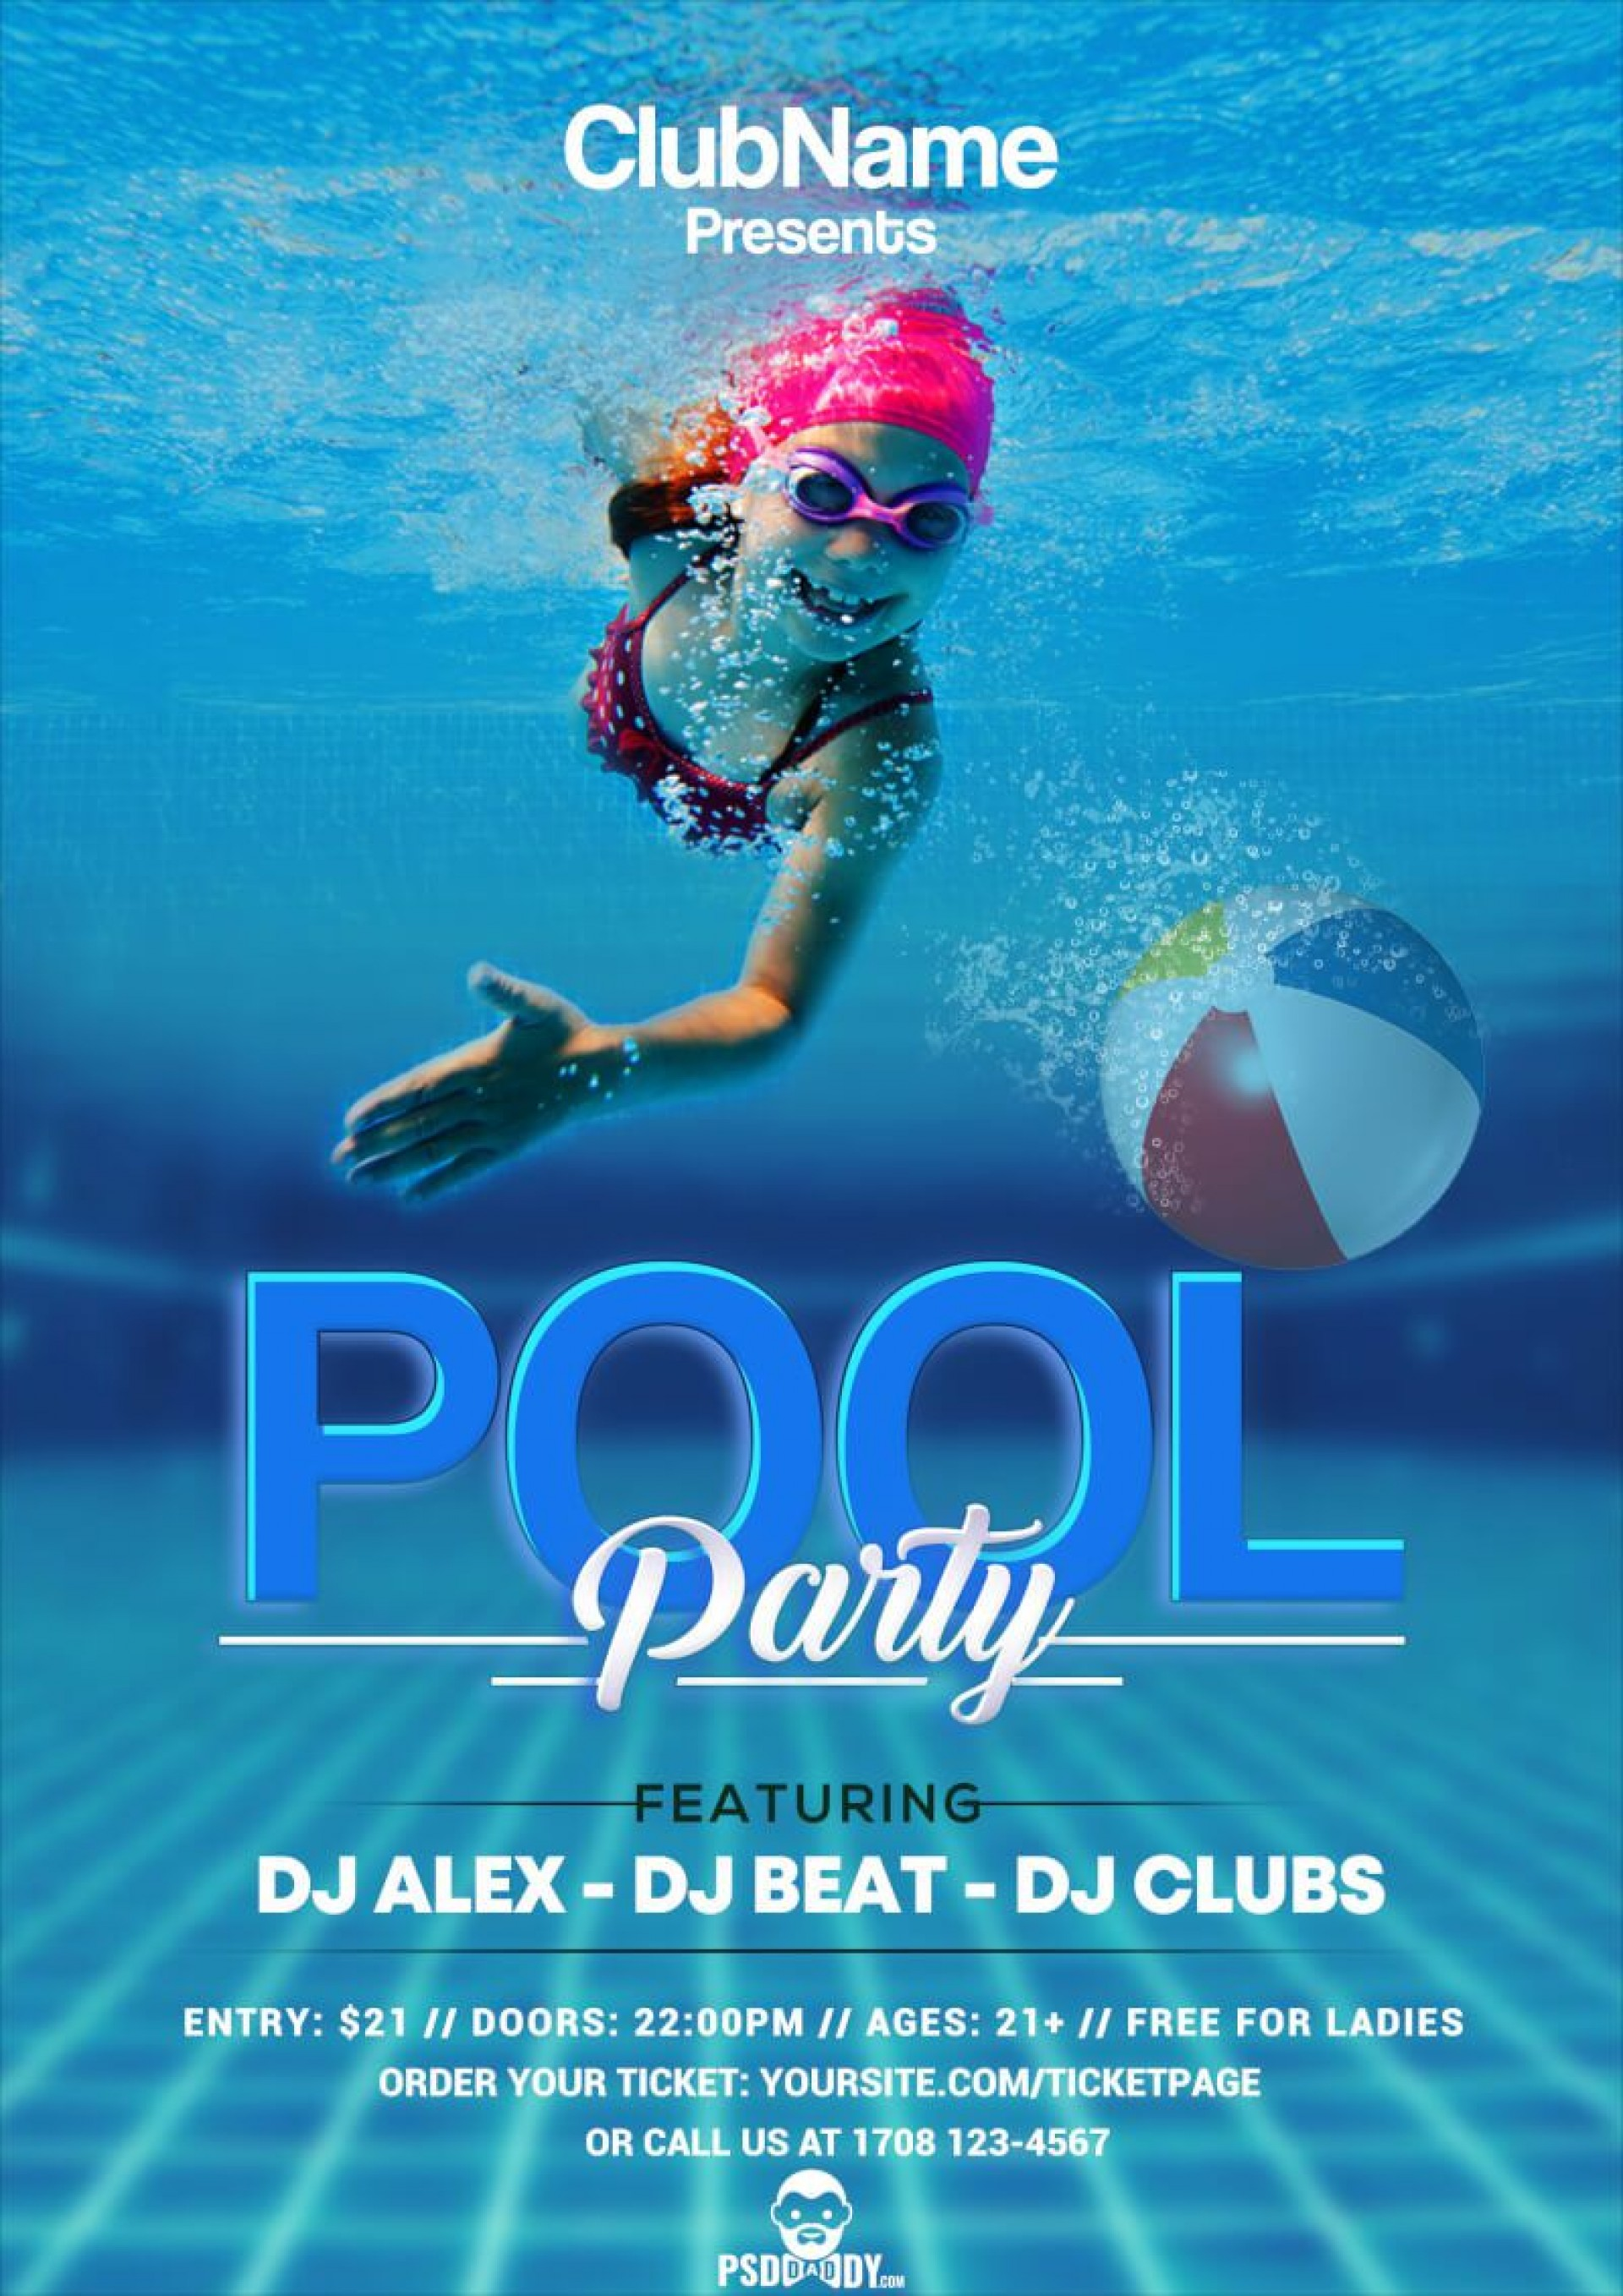 008 Wonderful Pool Party Flyer Template Free Image  Photoshop Psd1920